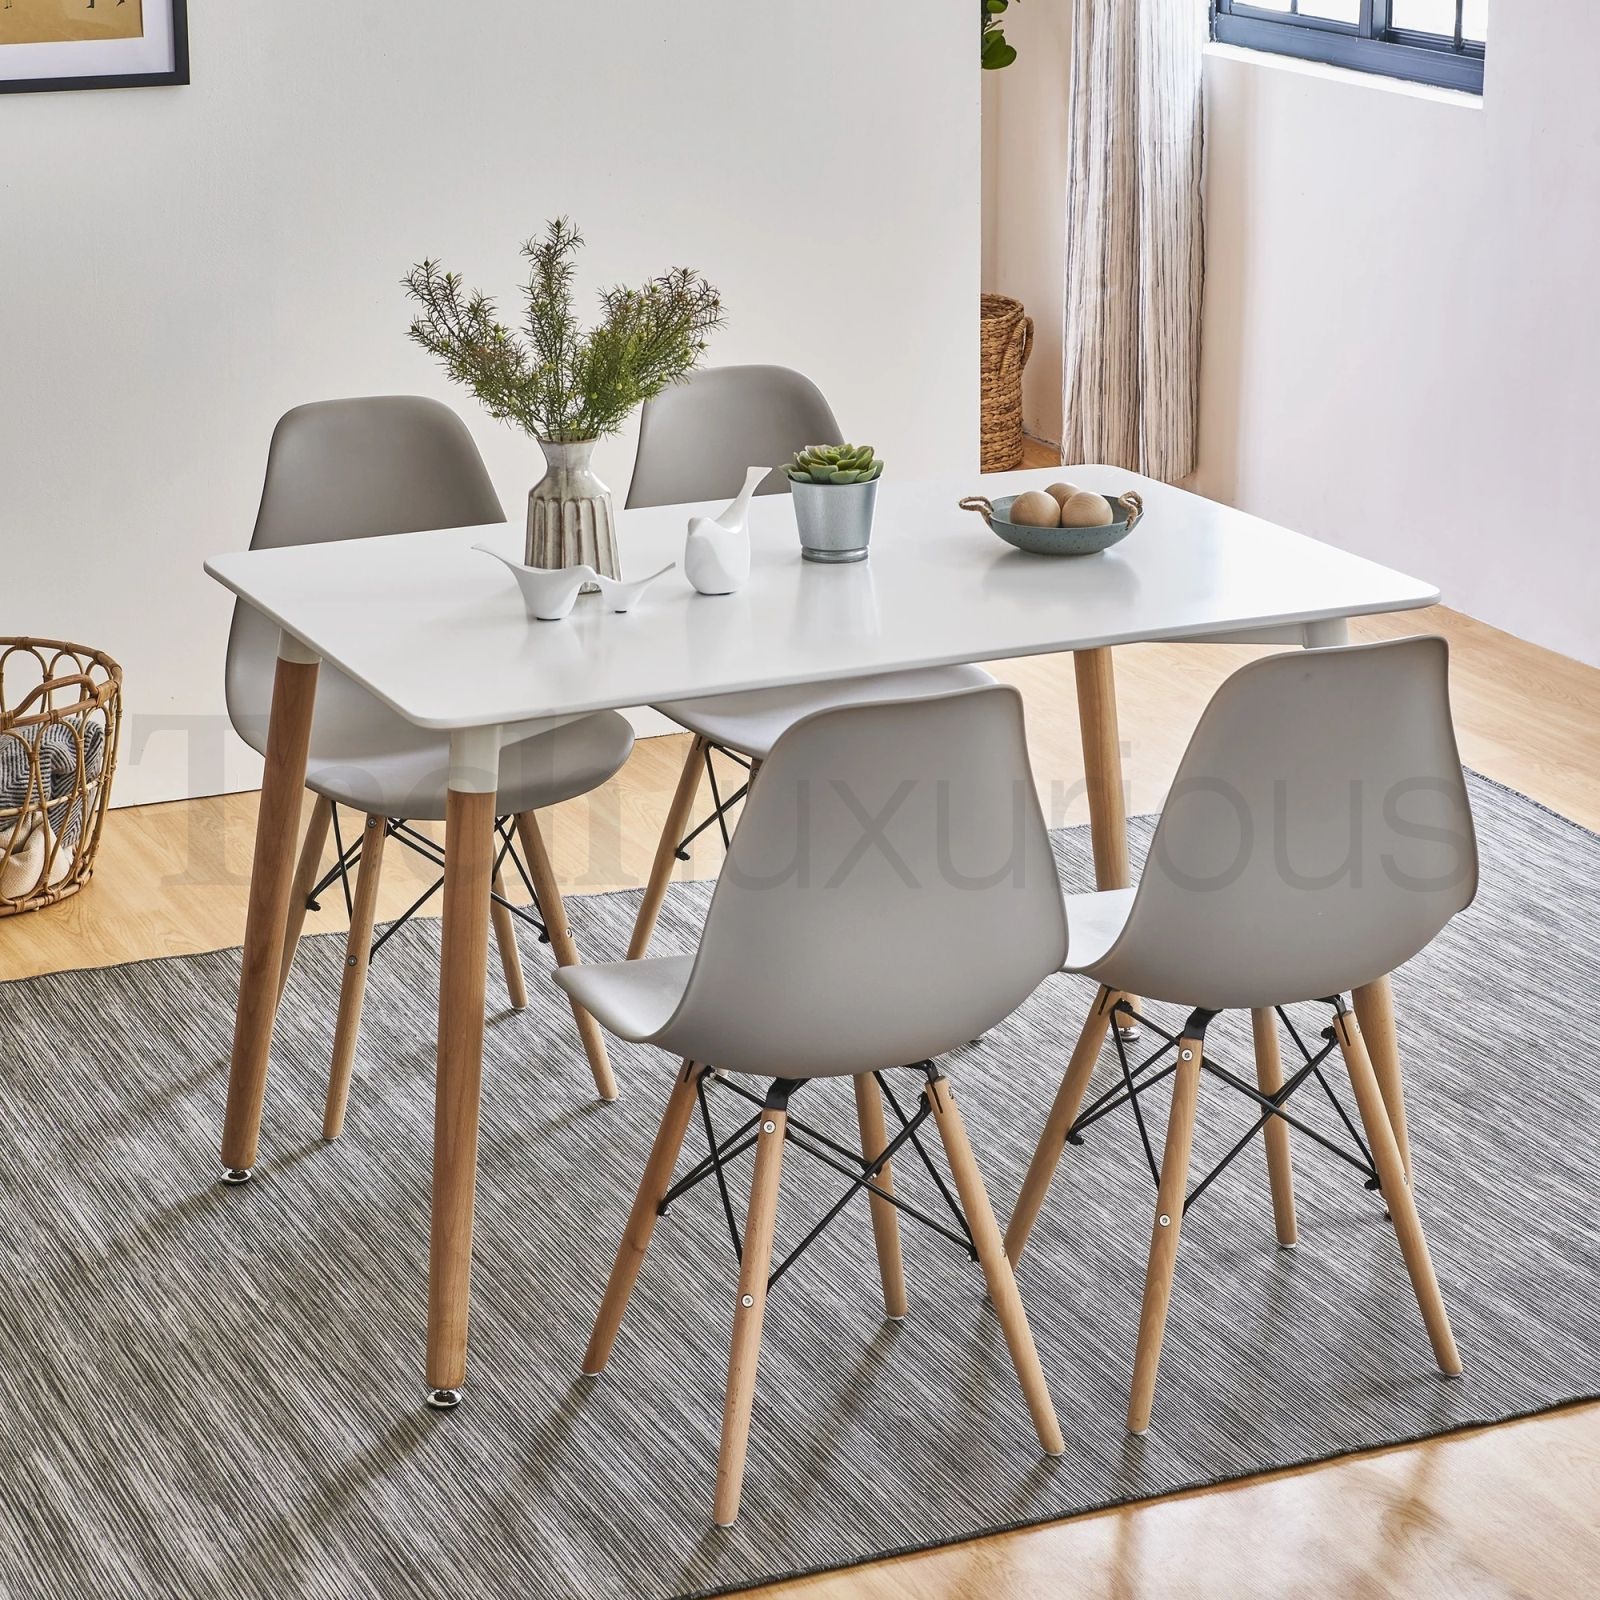 Details about Retro Dining Table and Chairs 4 or 6 Set Wooden Legs Room  Kitchen Lounge Chair